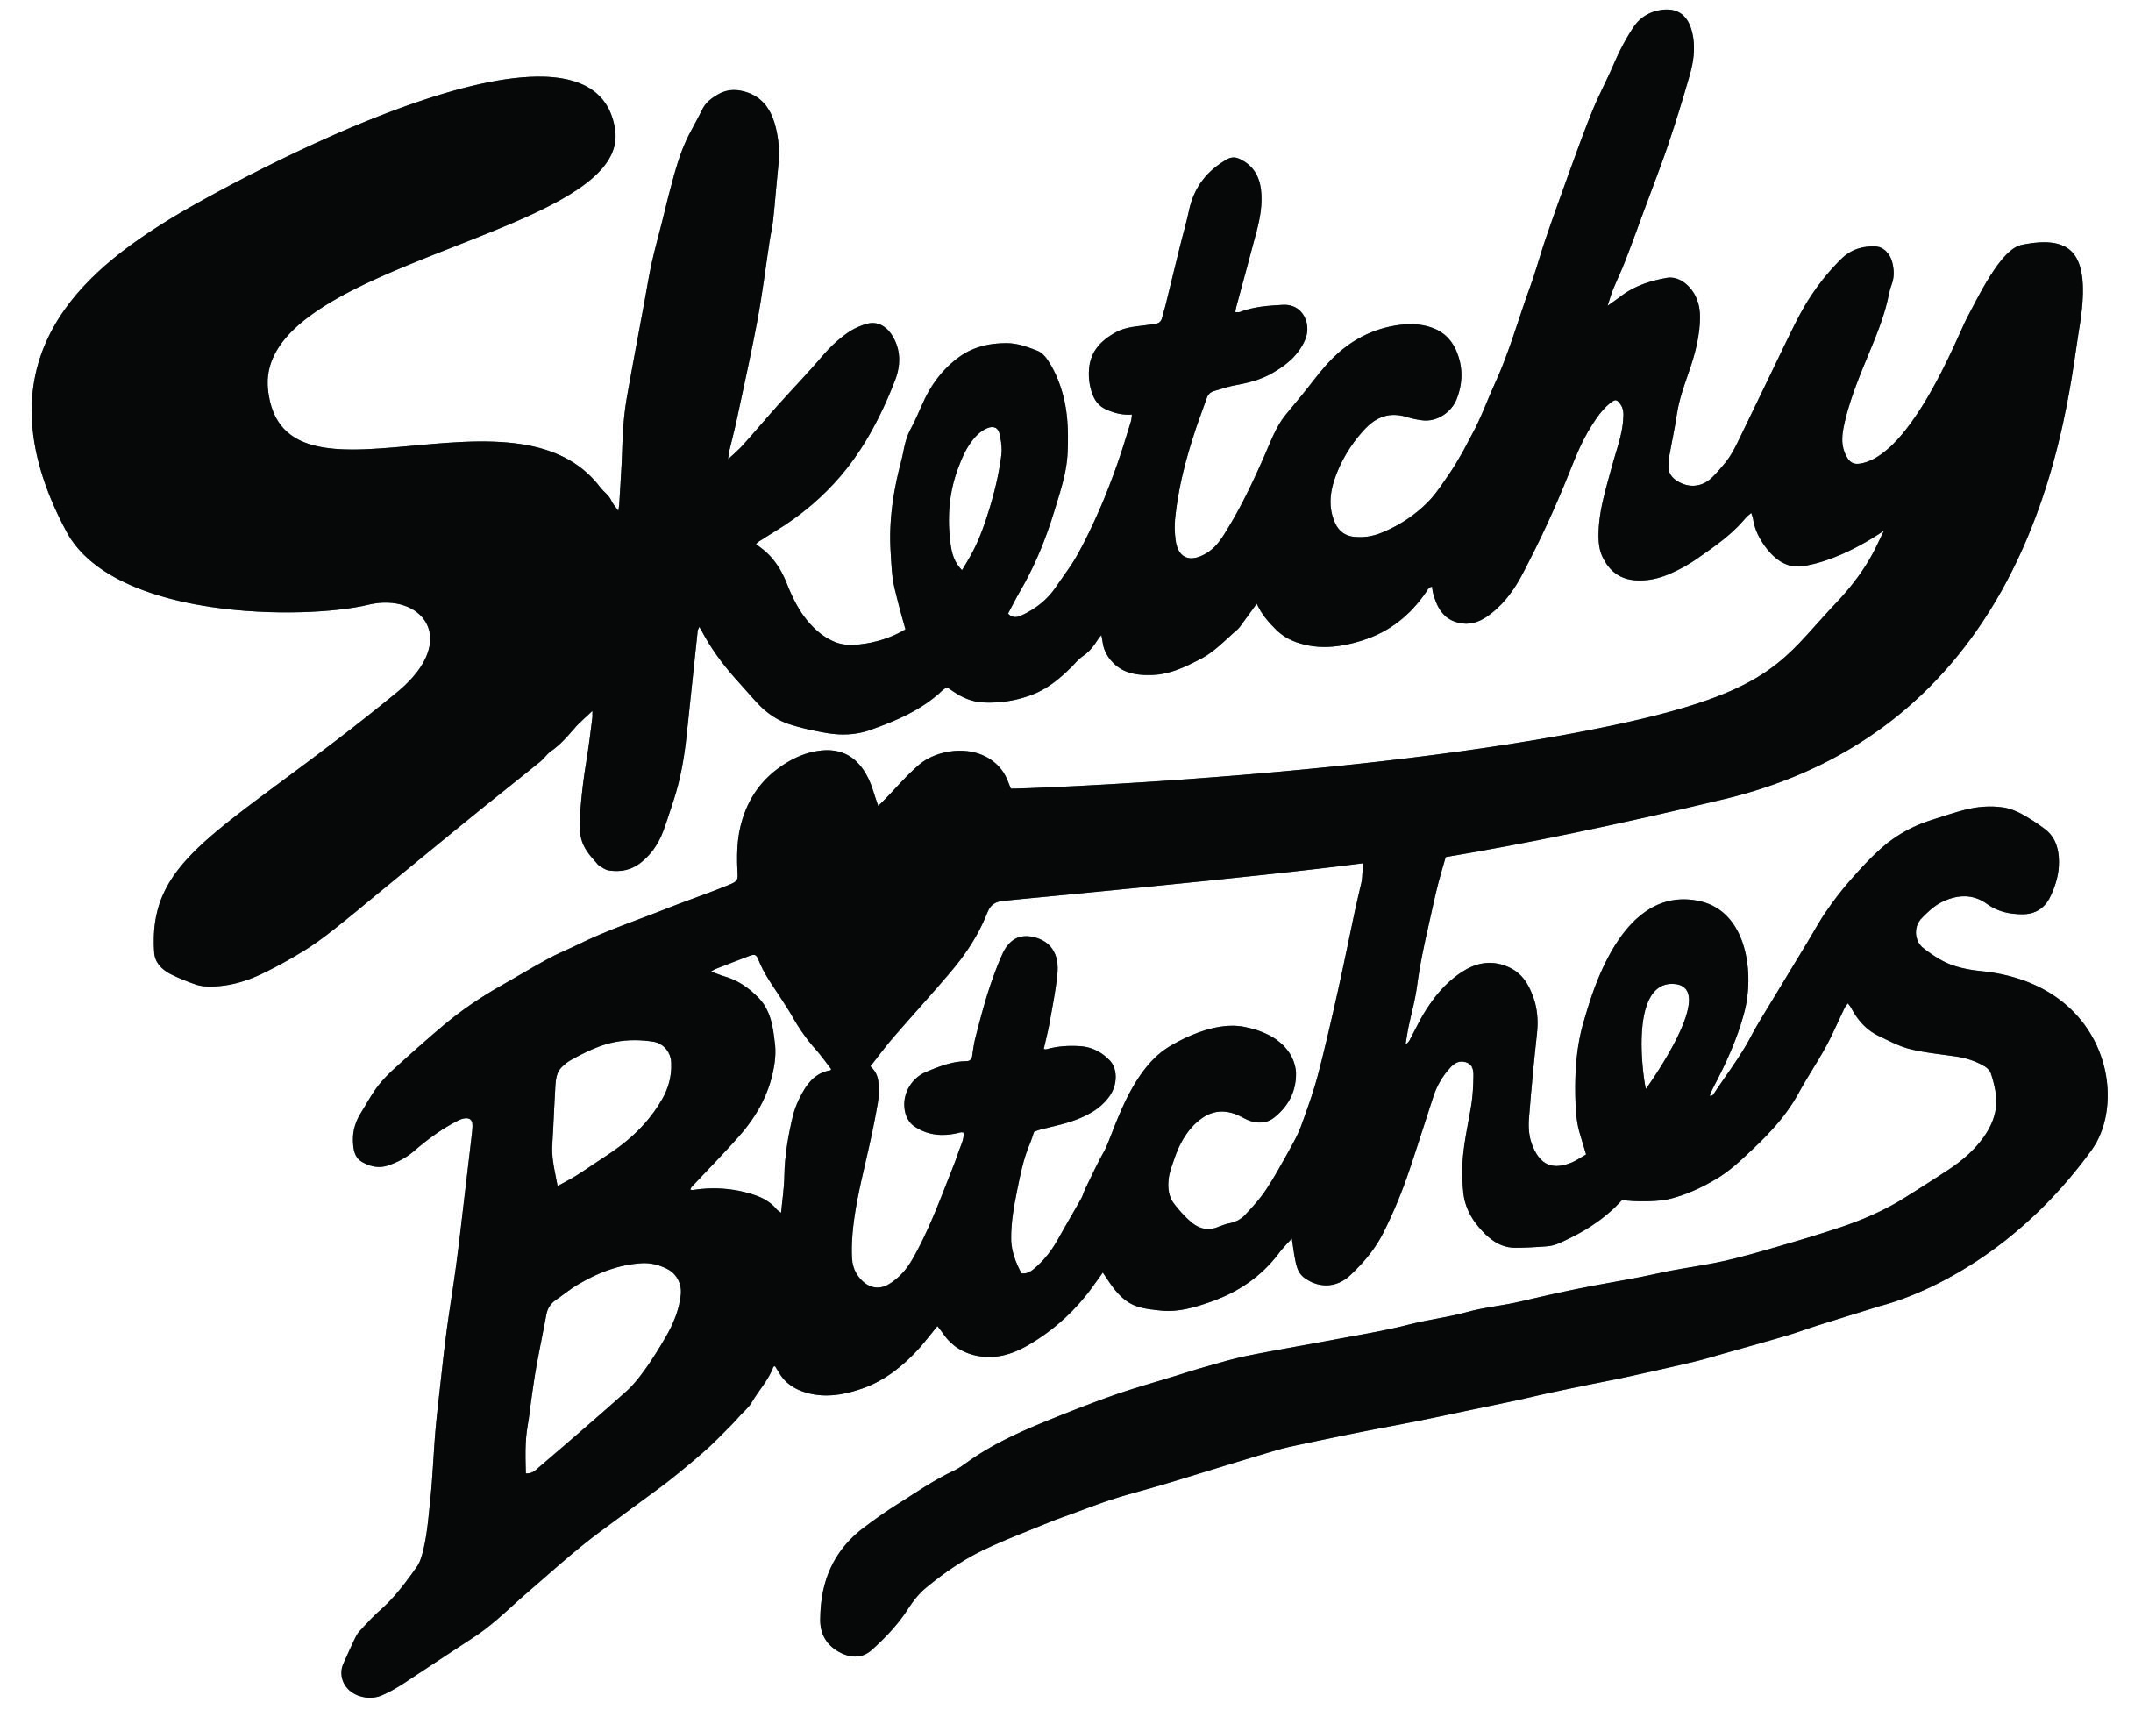 Sketchy Bitches